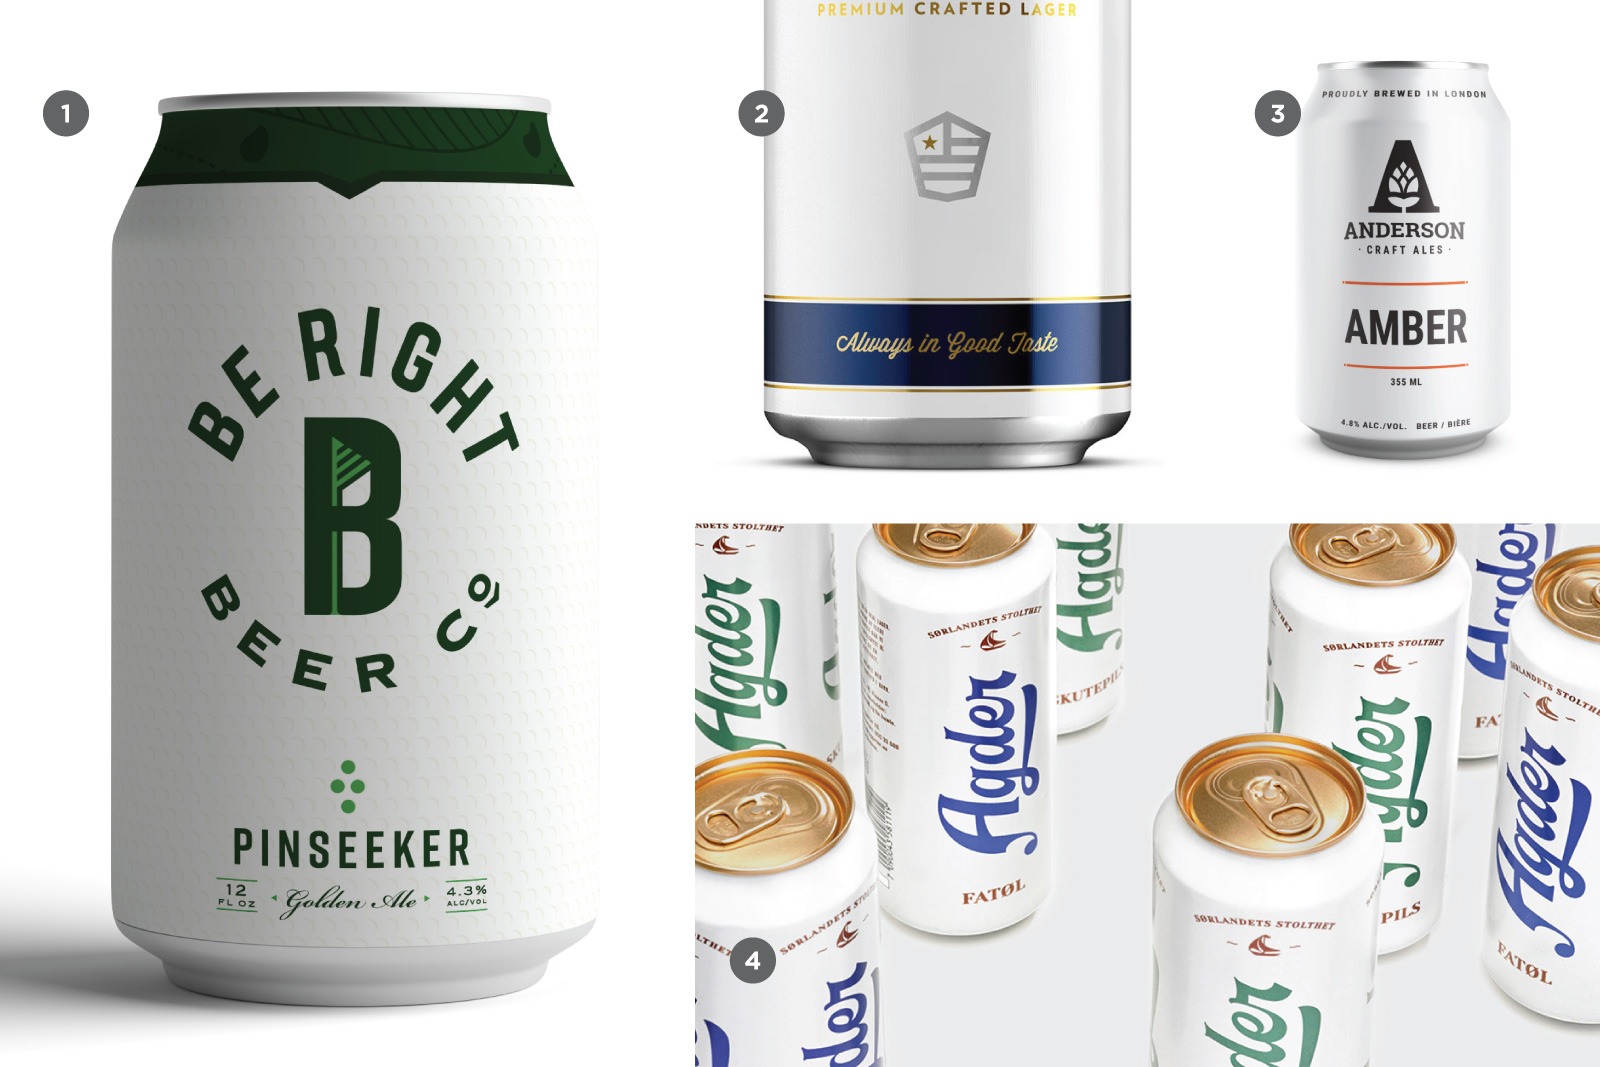 Some examples include 1. Be Right Beer Co, 2. House Beer, 3. Anderson Craft Ales, 4. Agder Bryggeri. Source:  CODO Design